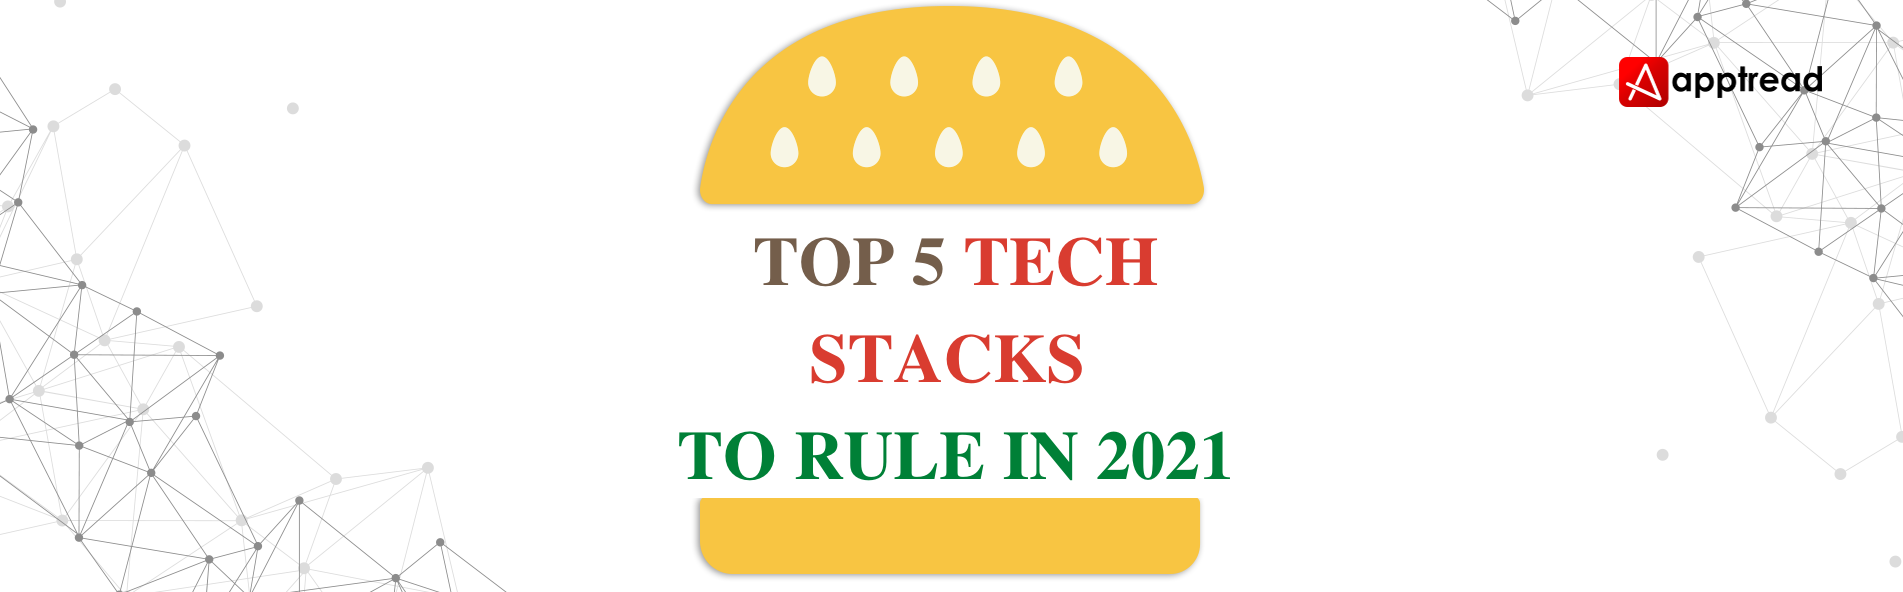 TOP 5 TECH STACKS TO RULE IN 2021